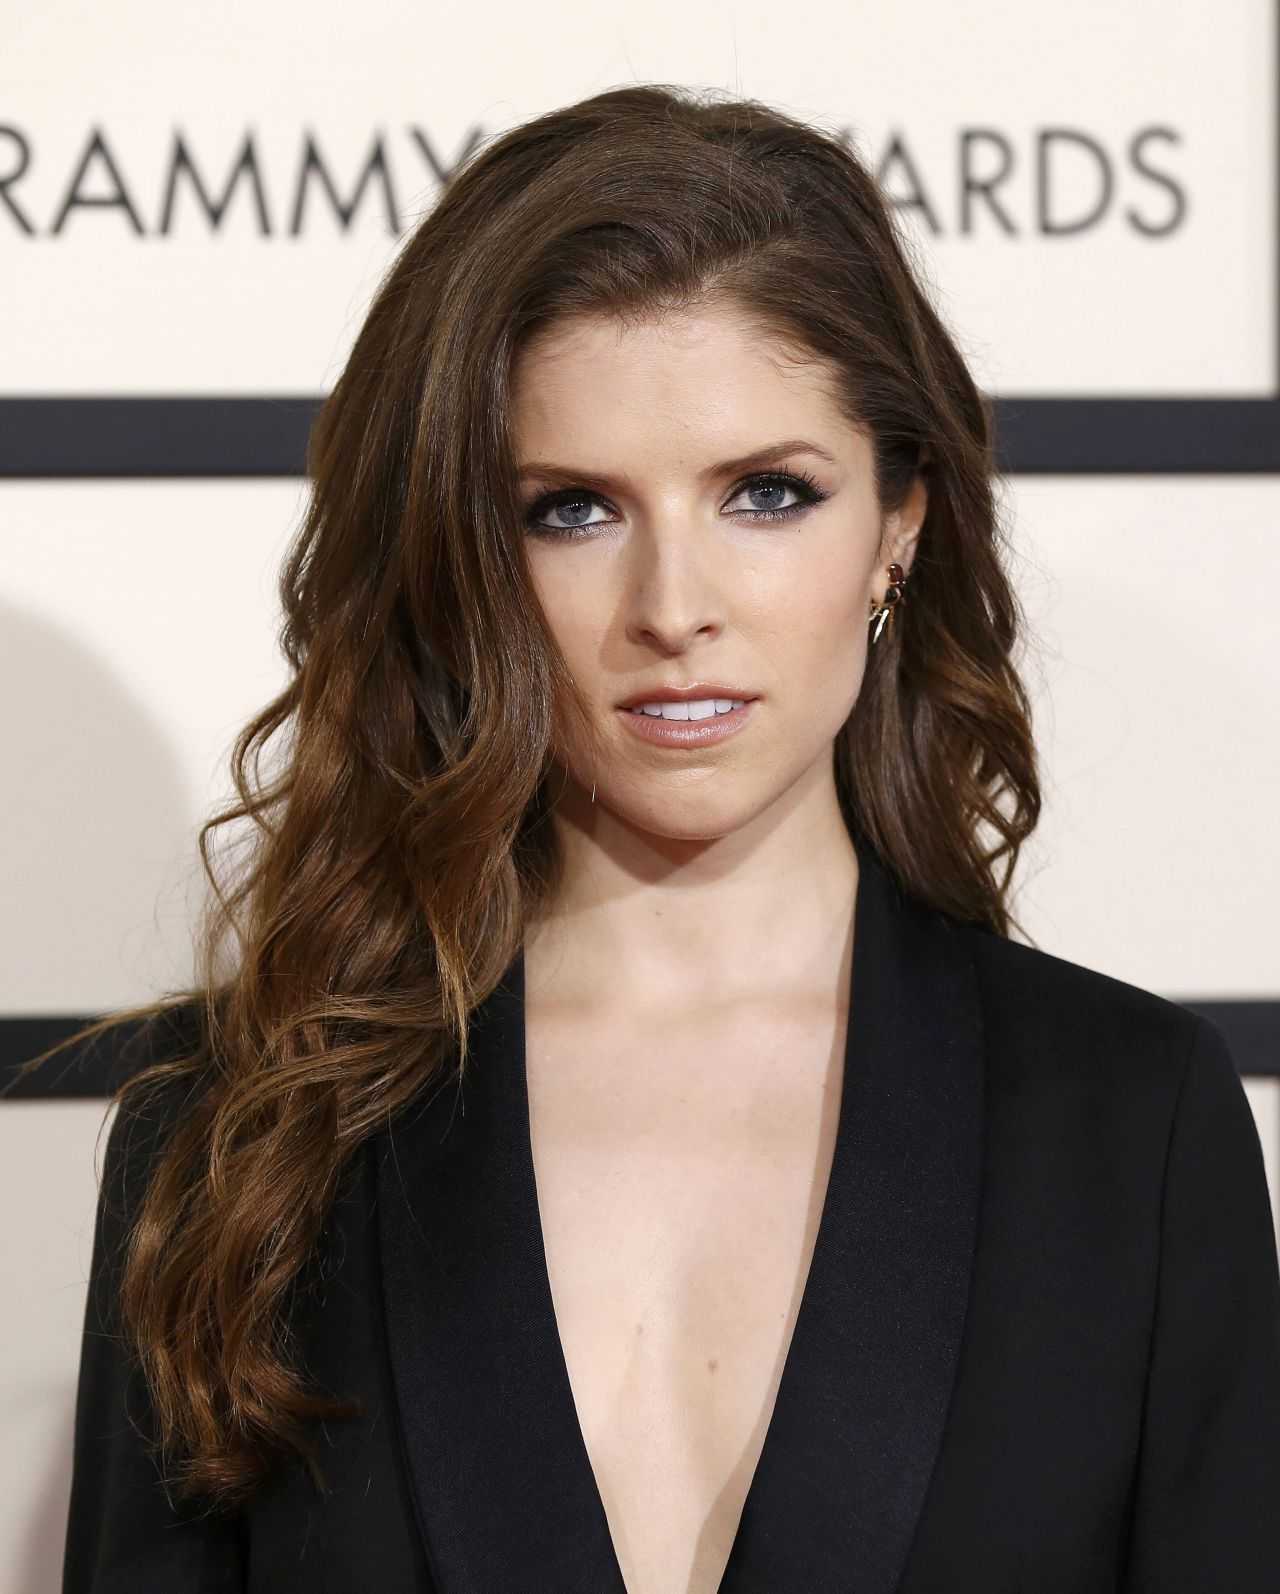 Anna Kendrick – 2015 Grammy Awards in Los Angeles